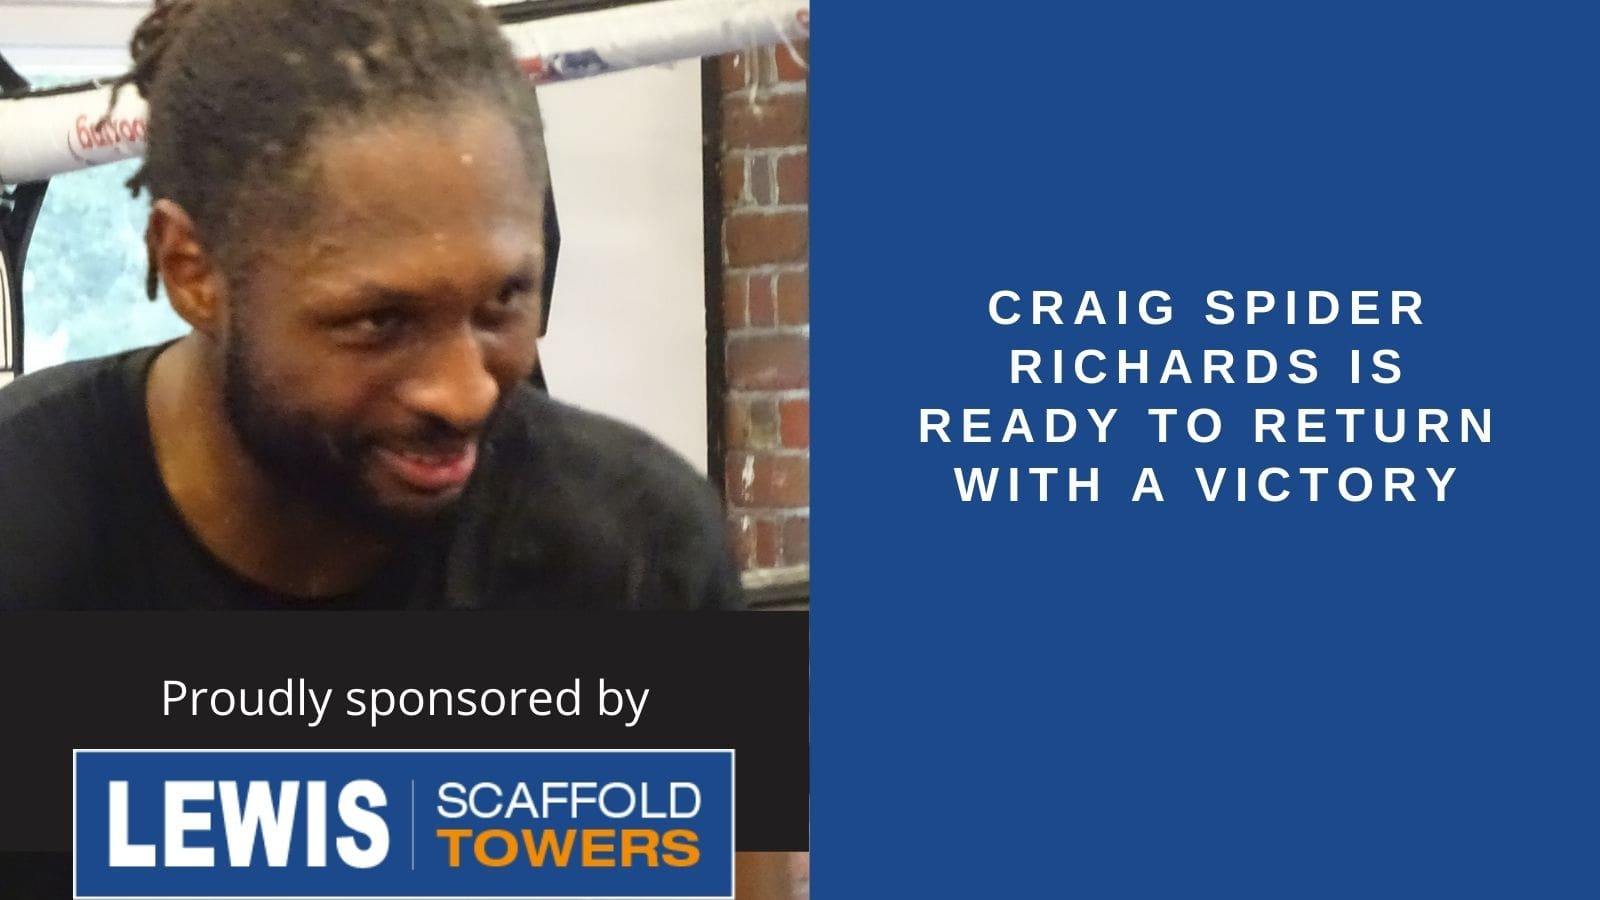 Craig Spider Richards is ready to return with a victory-min